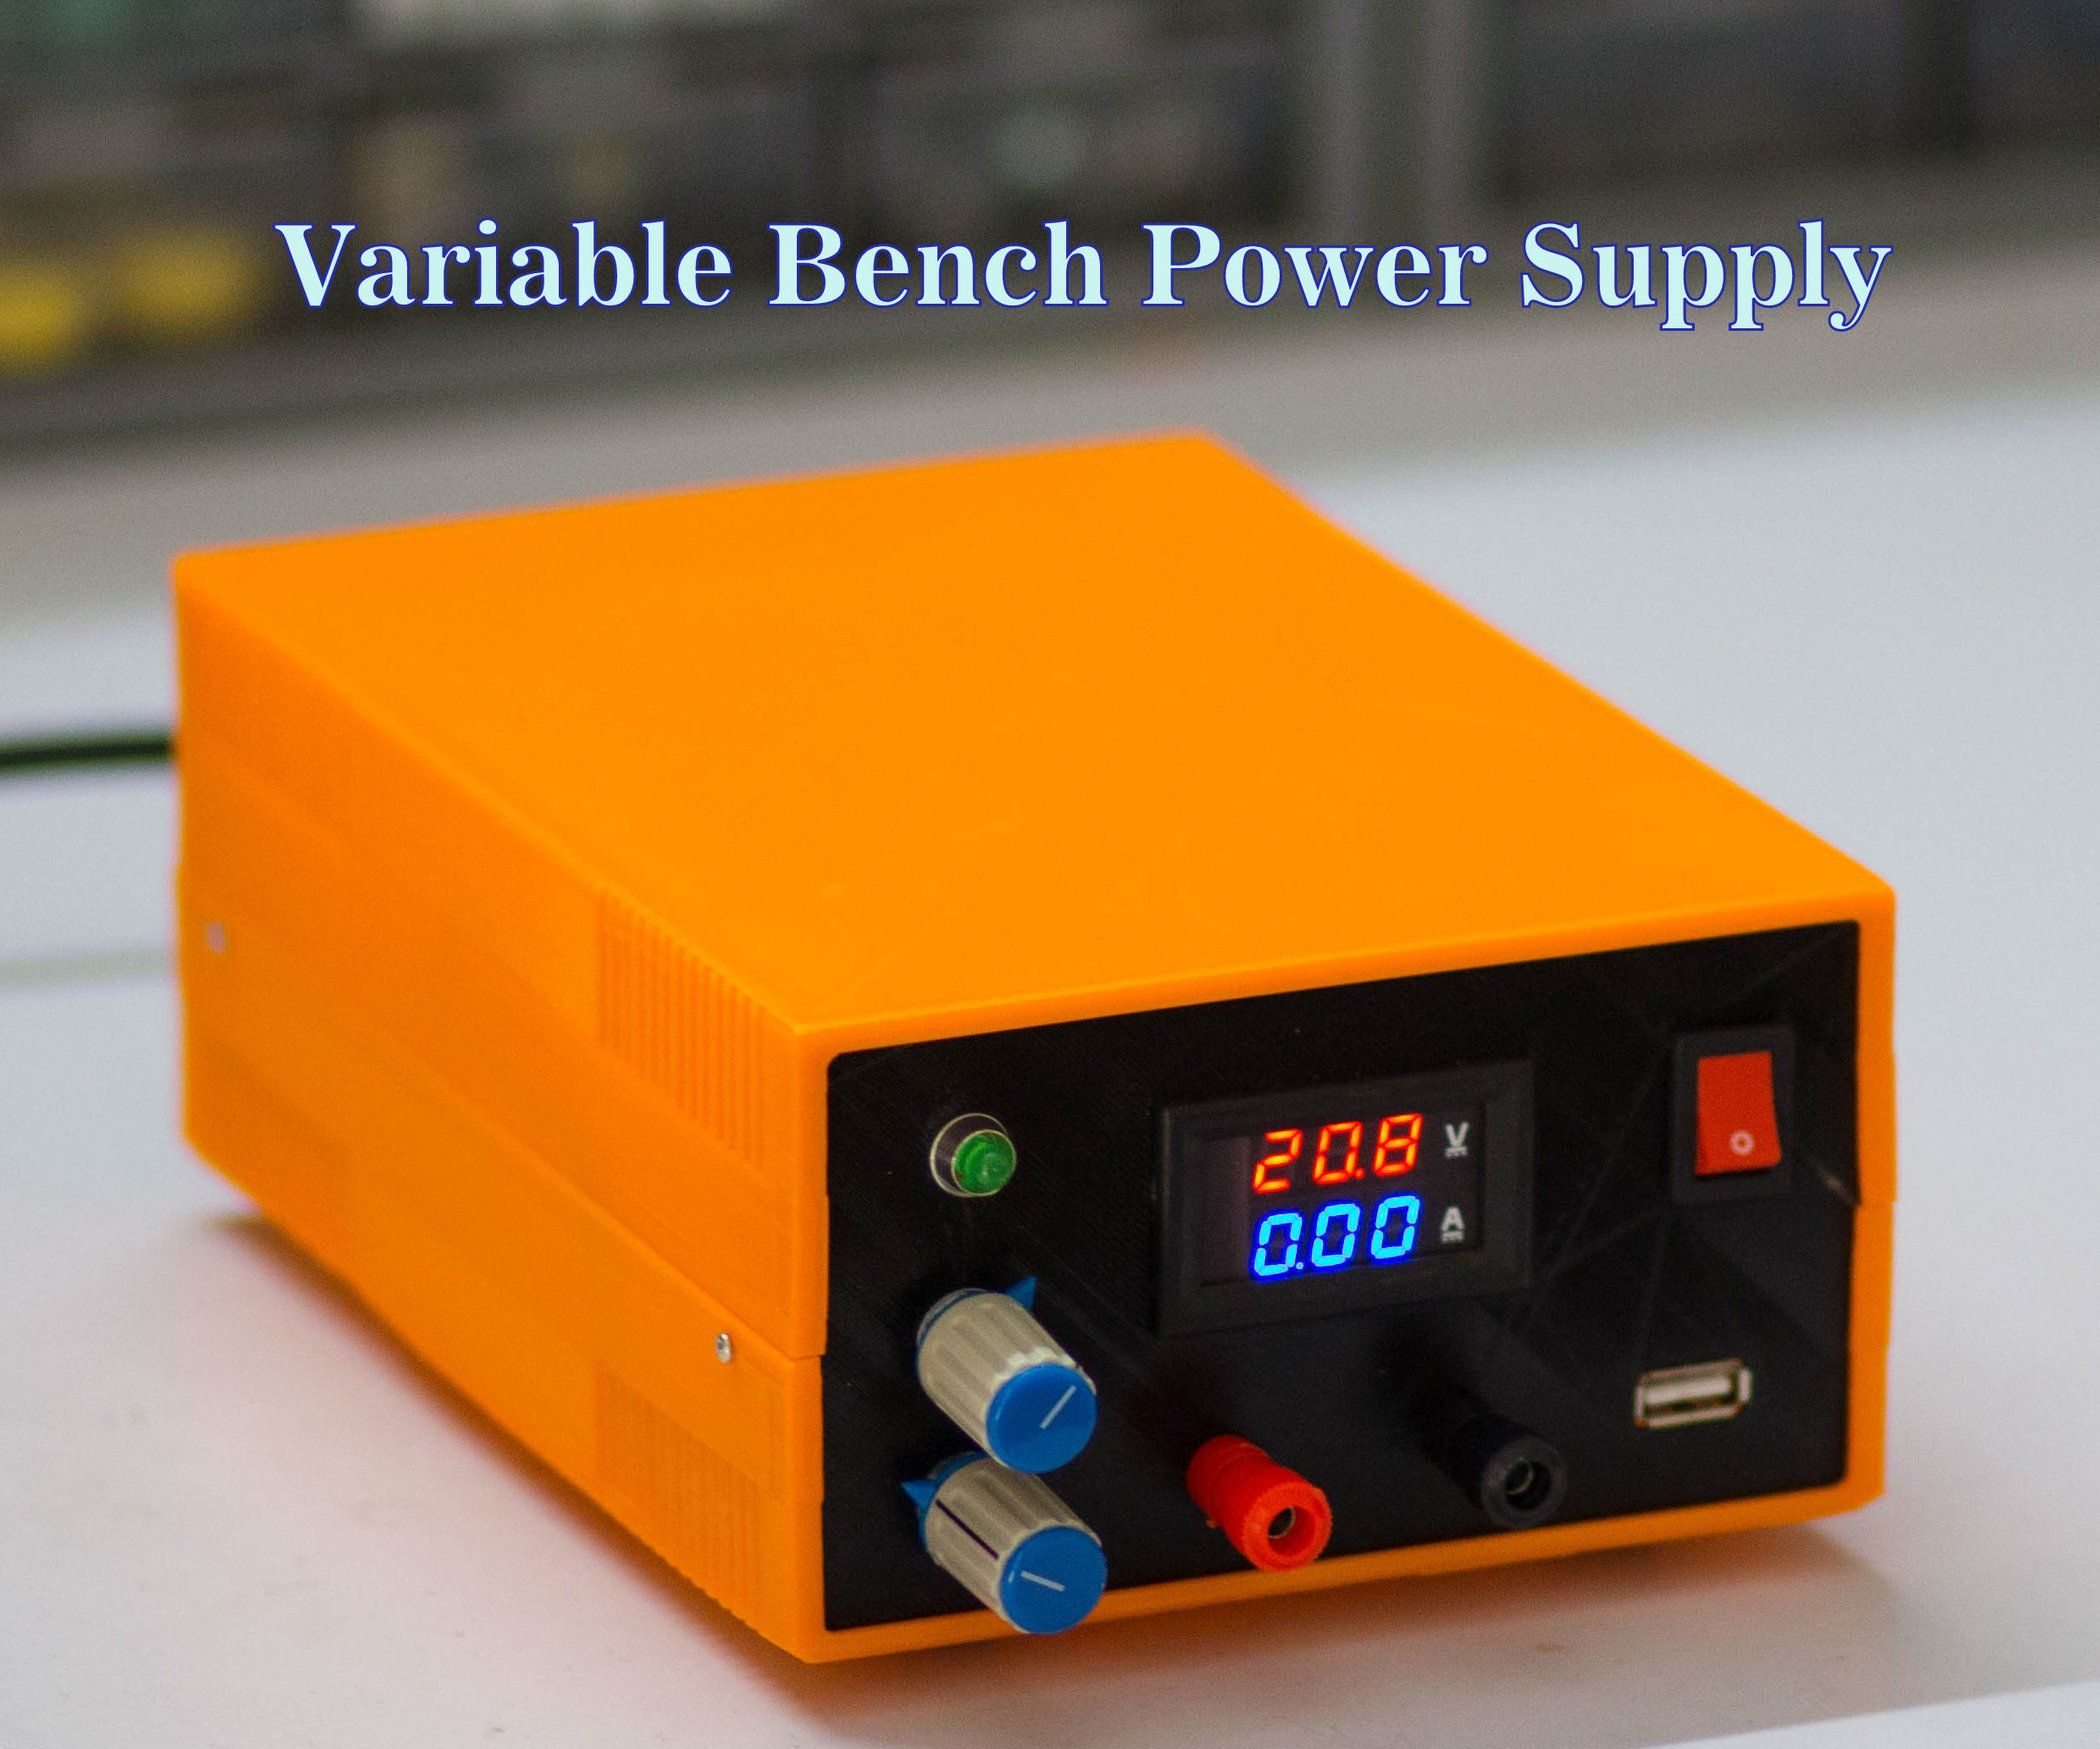 How To Make A Bench Power Supply Diy Projects For Beginners Electronics Projects Diy Power Supply